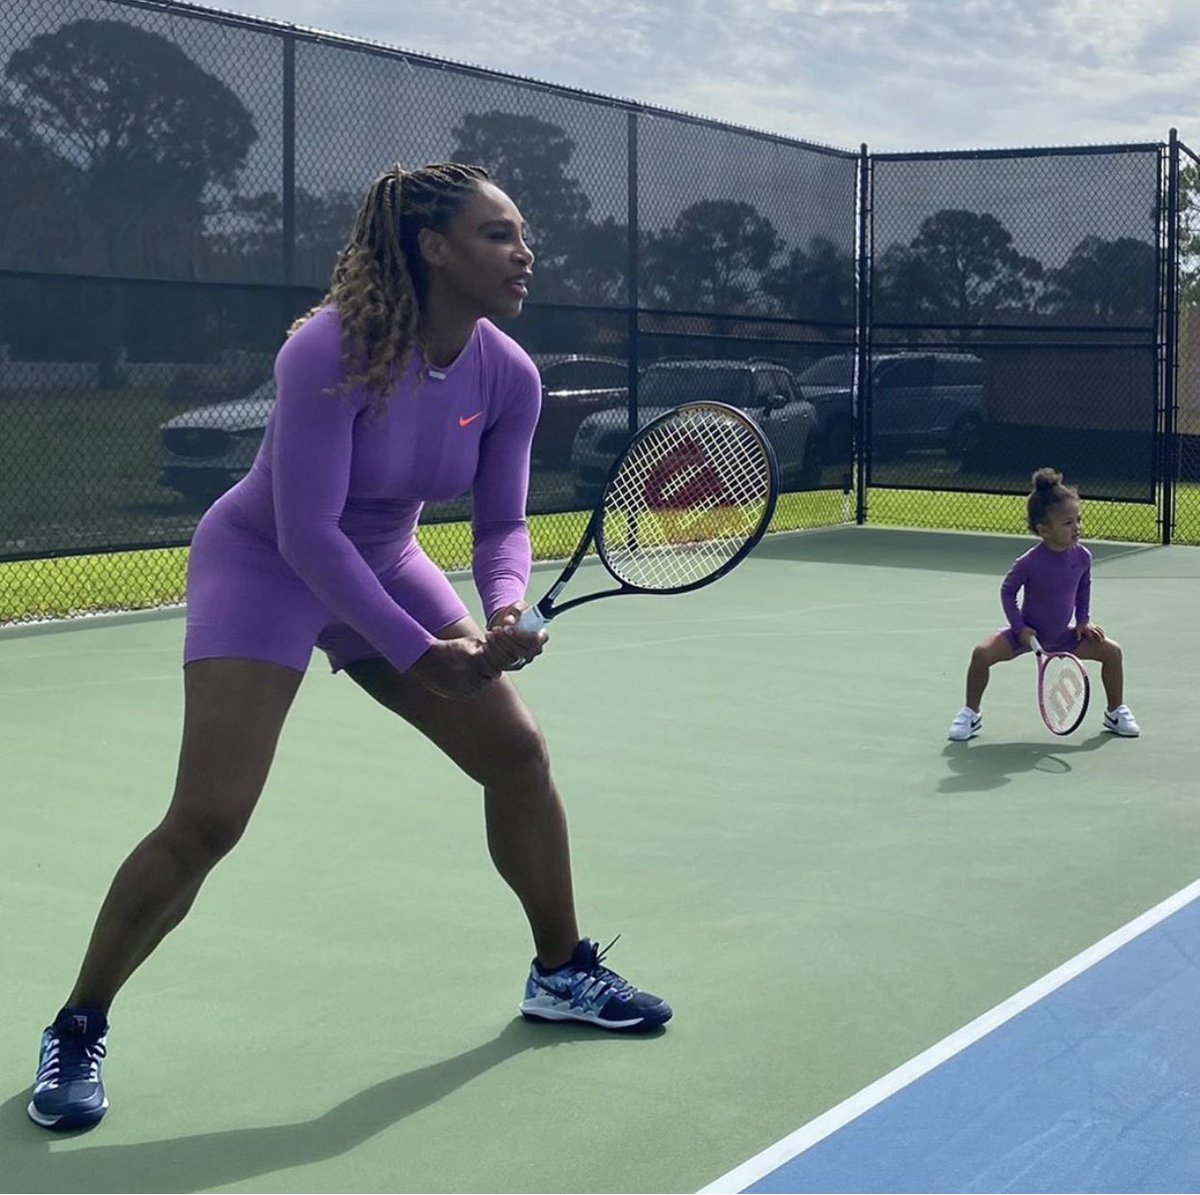 Serena Williams starting her two-year old daughter Olympia off early A legend in the making 💜